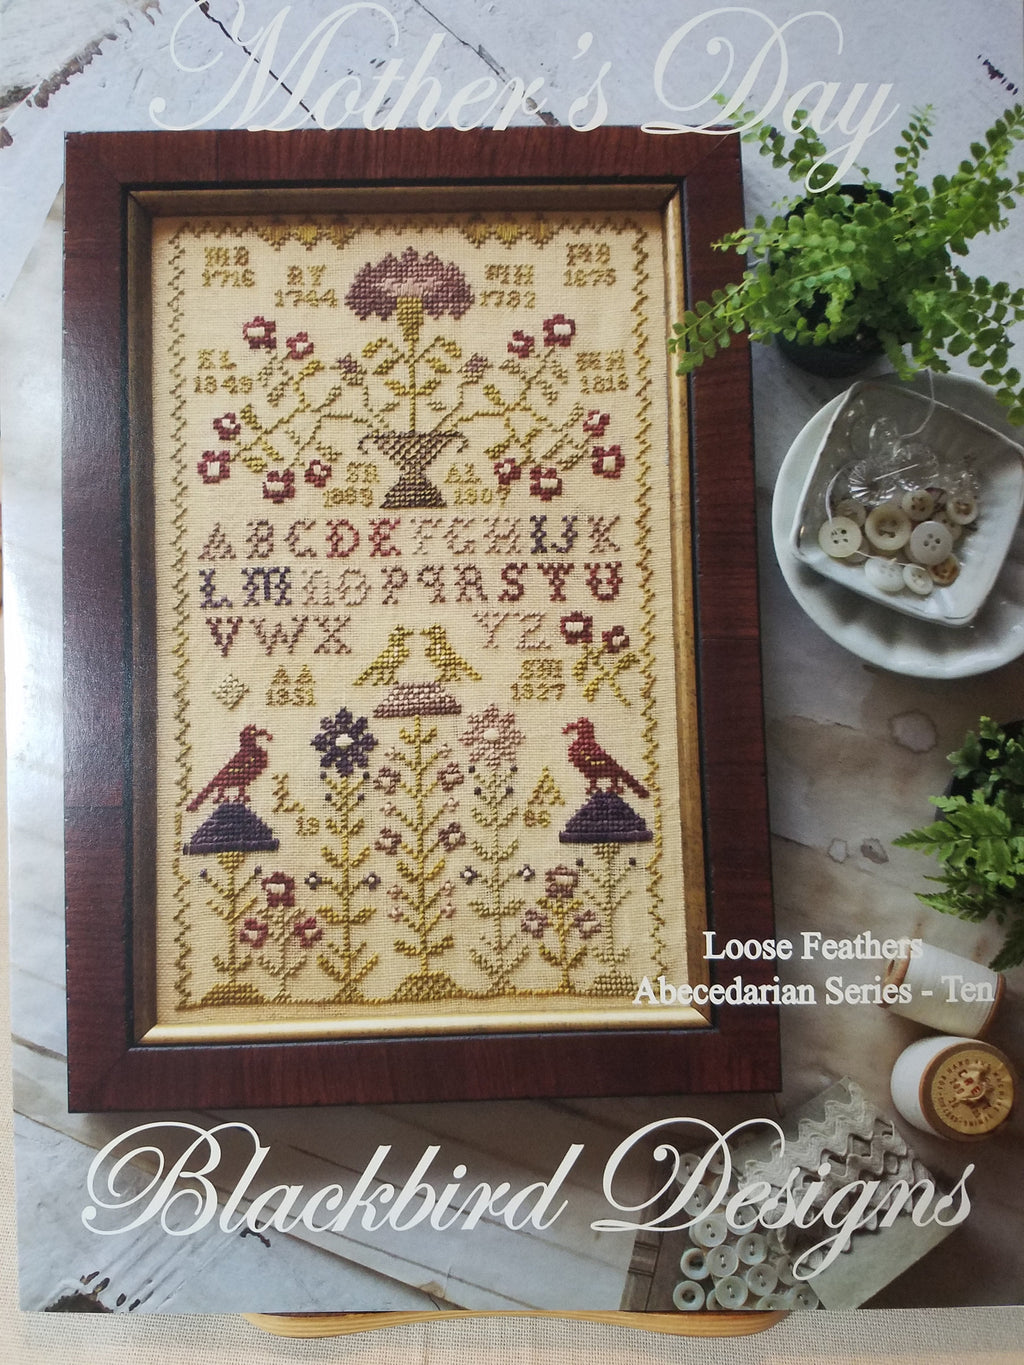 Loose Feathers - Mother's Day - Cross Stitch Pattern by Blackbird Designs